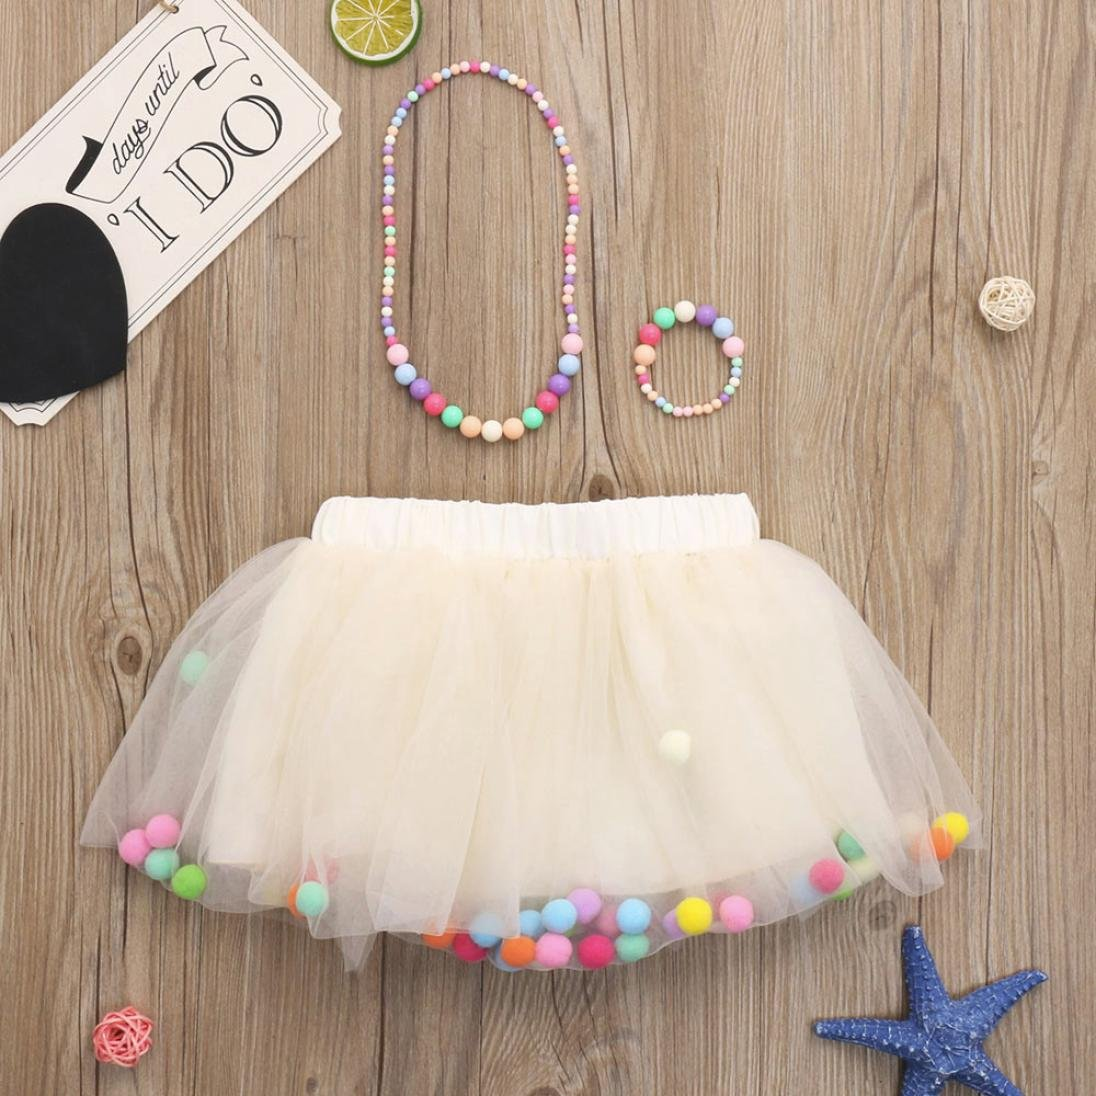 Winkey 3Pcs Baby Girls Kids Tutu Ballet Skirts+Bracelet+Necklace Party Set Red